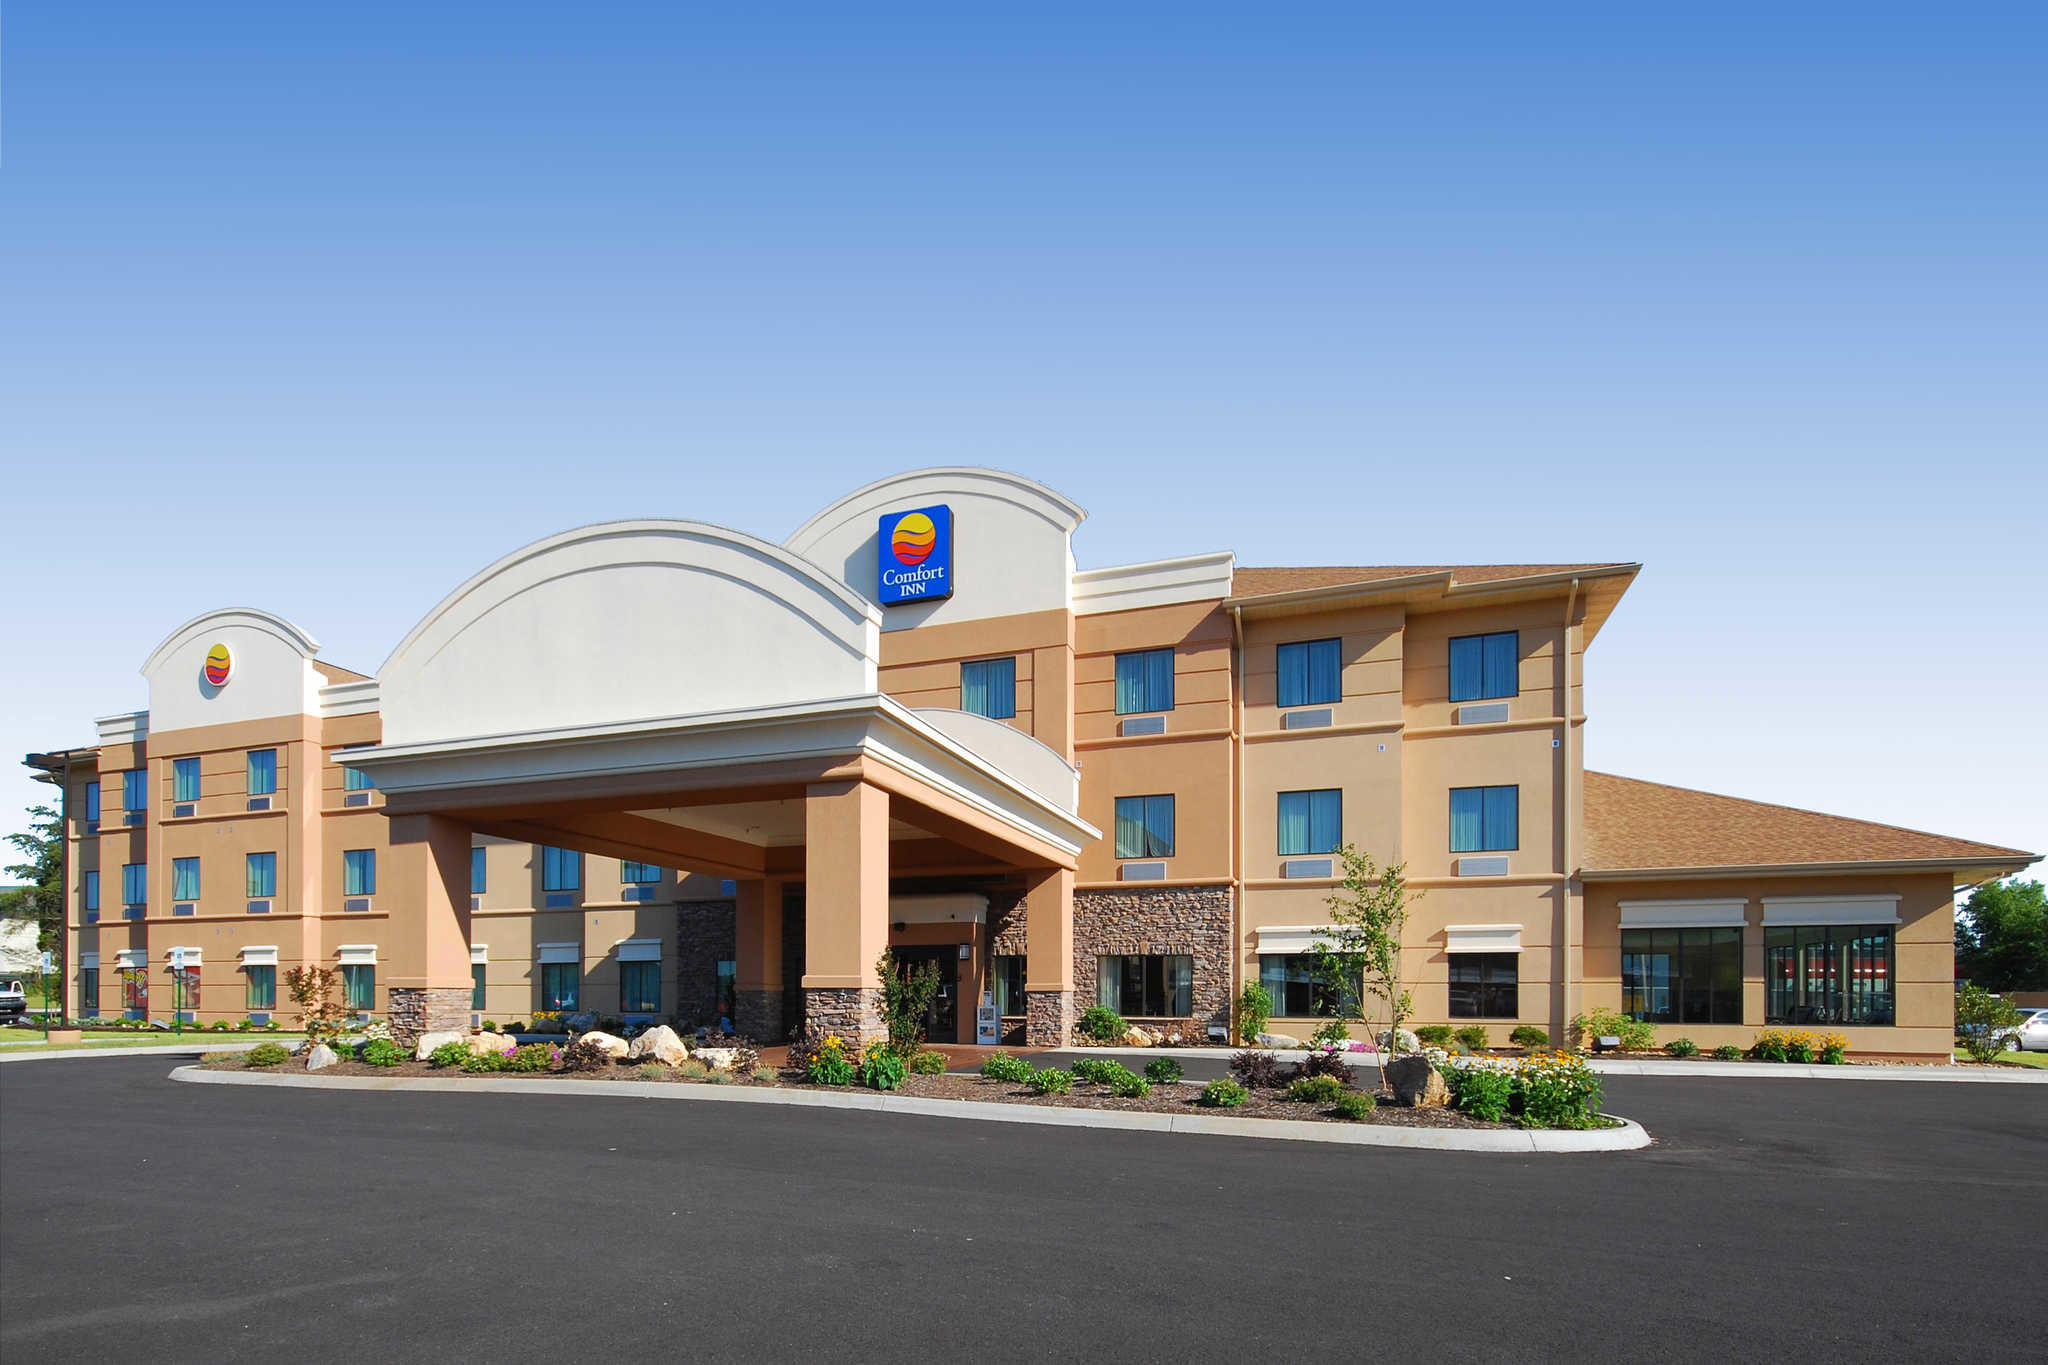 Comfort Inn Powell - Knoxville North image 0